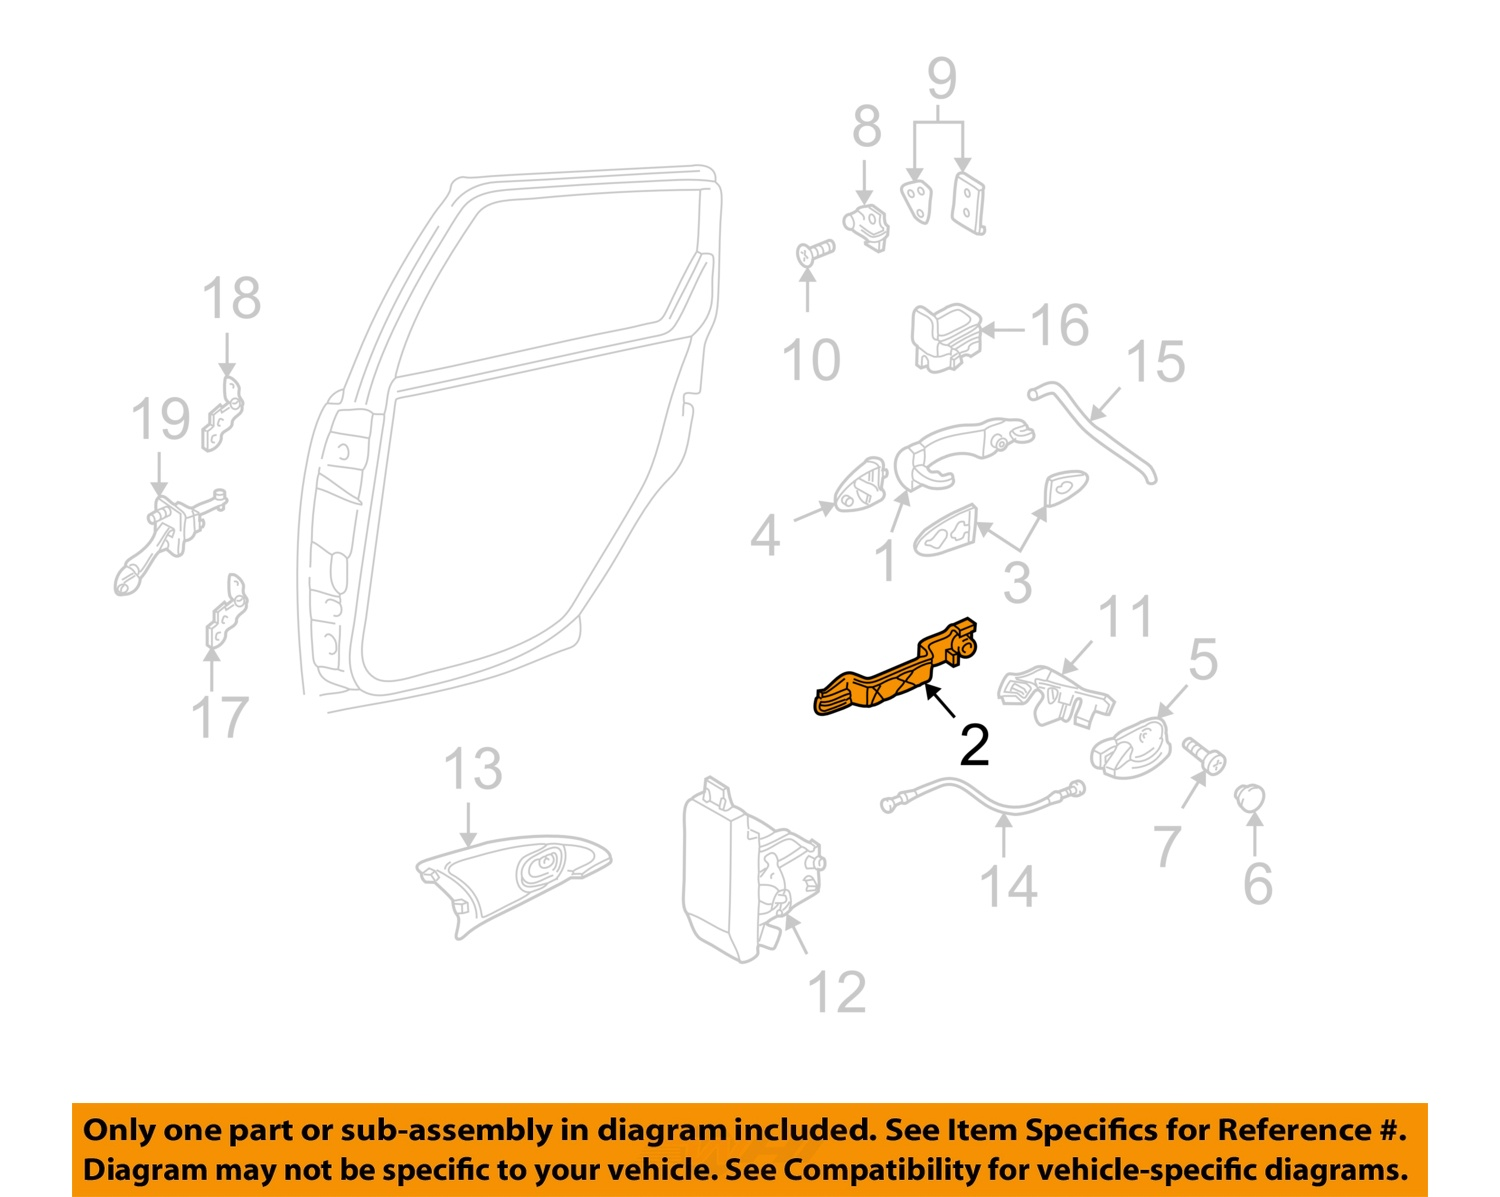 ford focus door parts diagram cat6a plug wiring 2007 handle auto